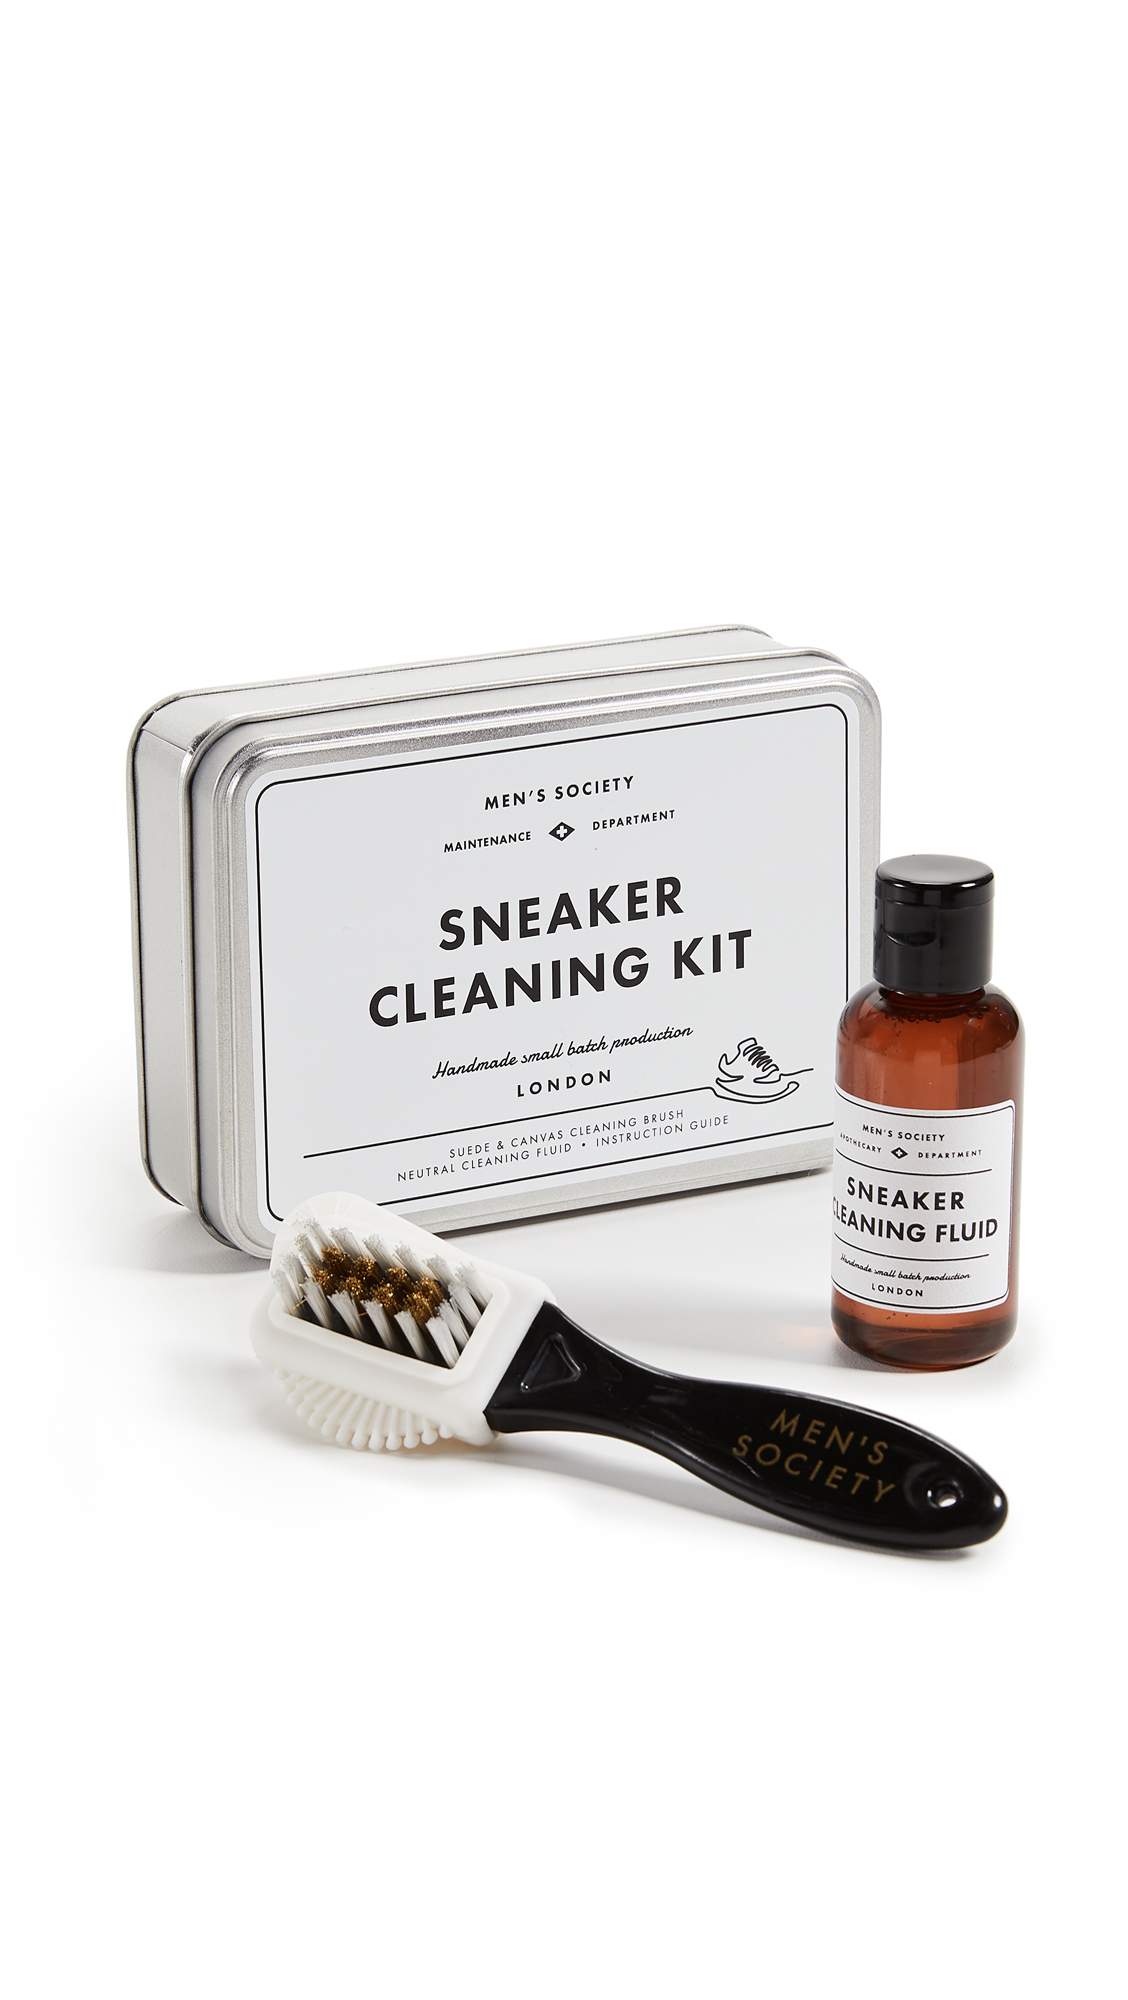 Men's Society Sneaker Cleaning Kit